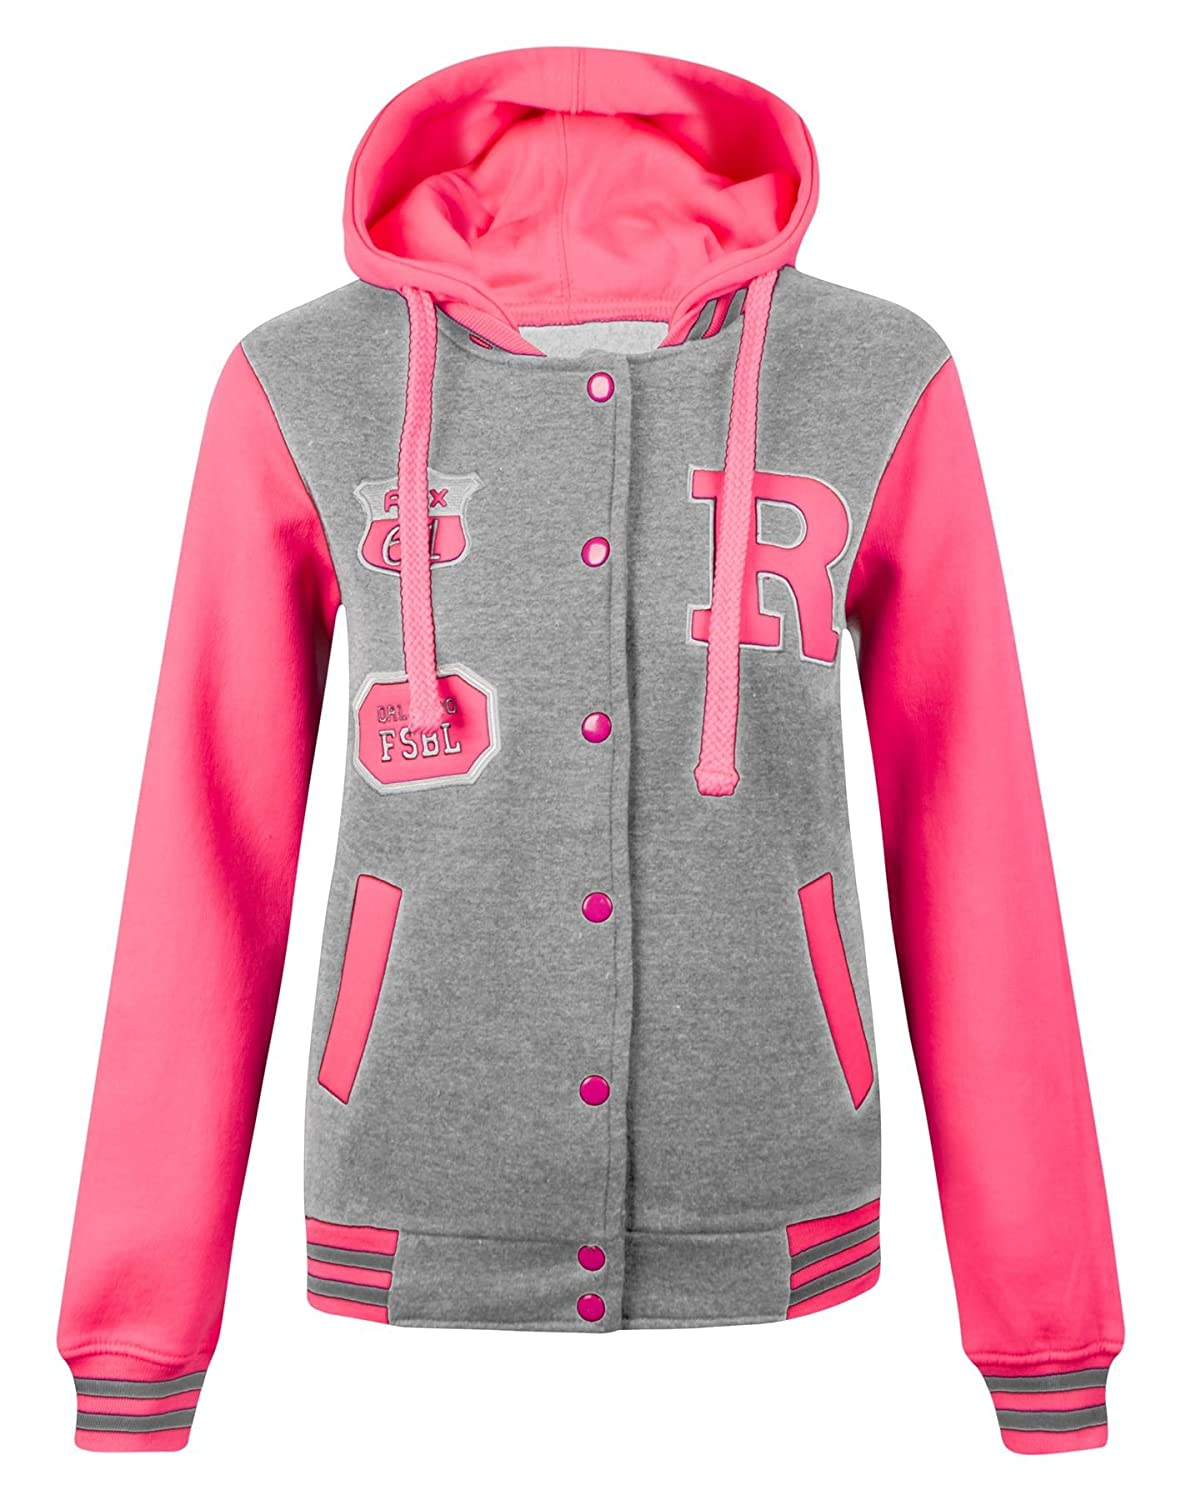 Shop for girls bomber jacket online at Target. Free shipping on purchases over $35 and save 5% every day with your Target REDcard.